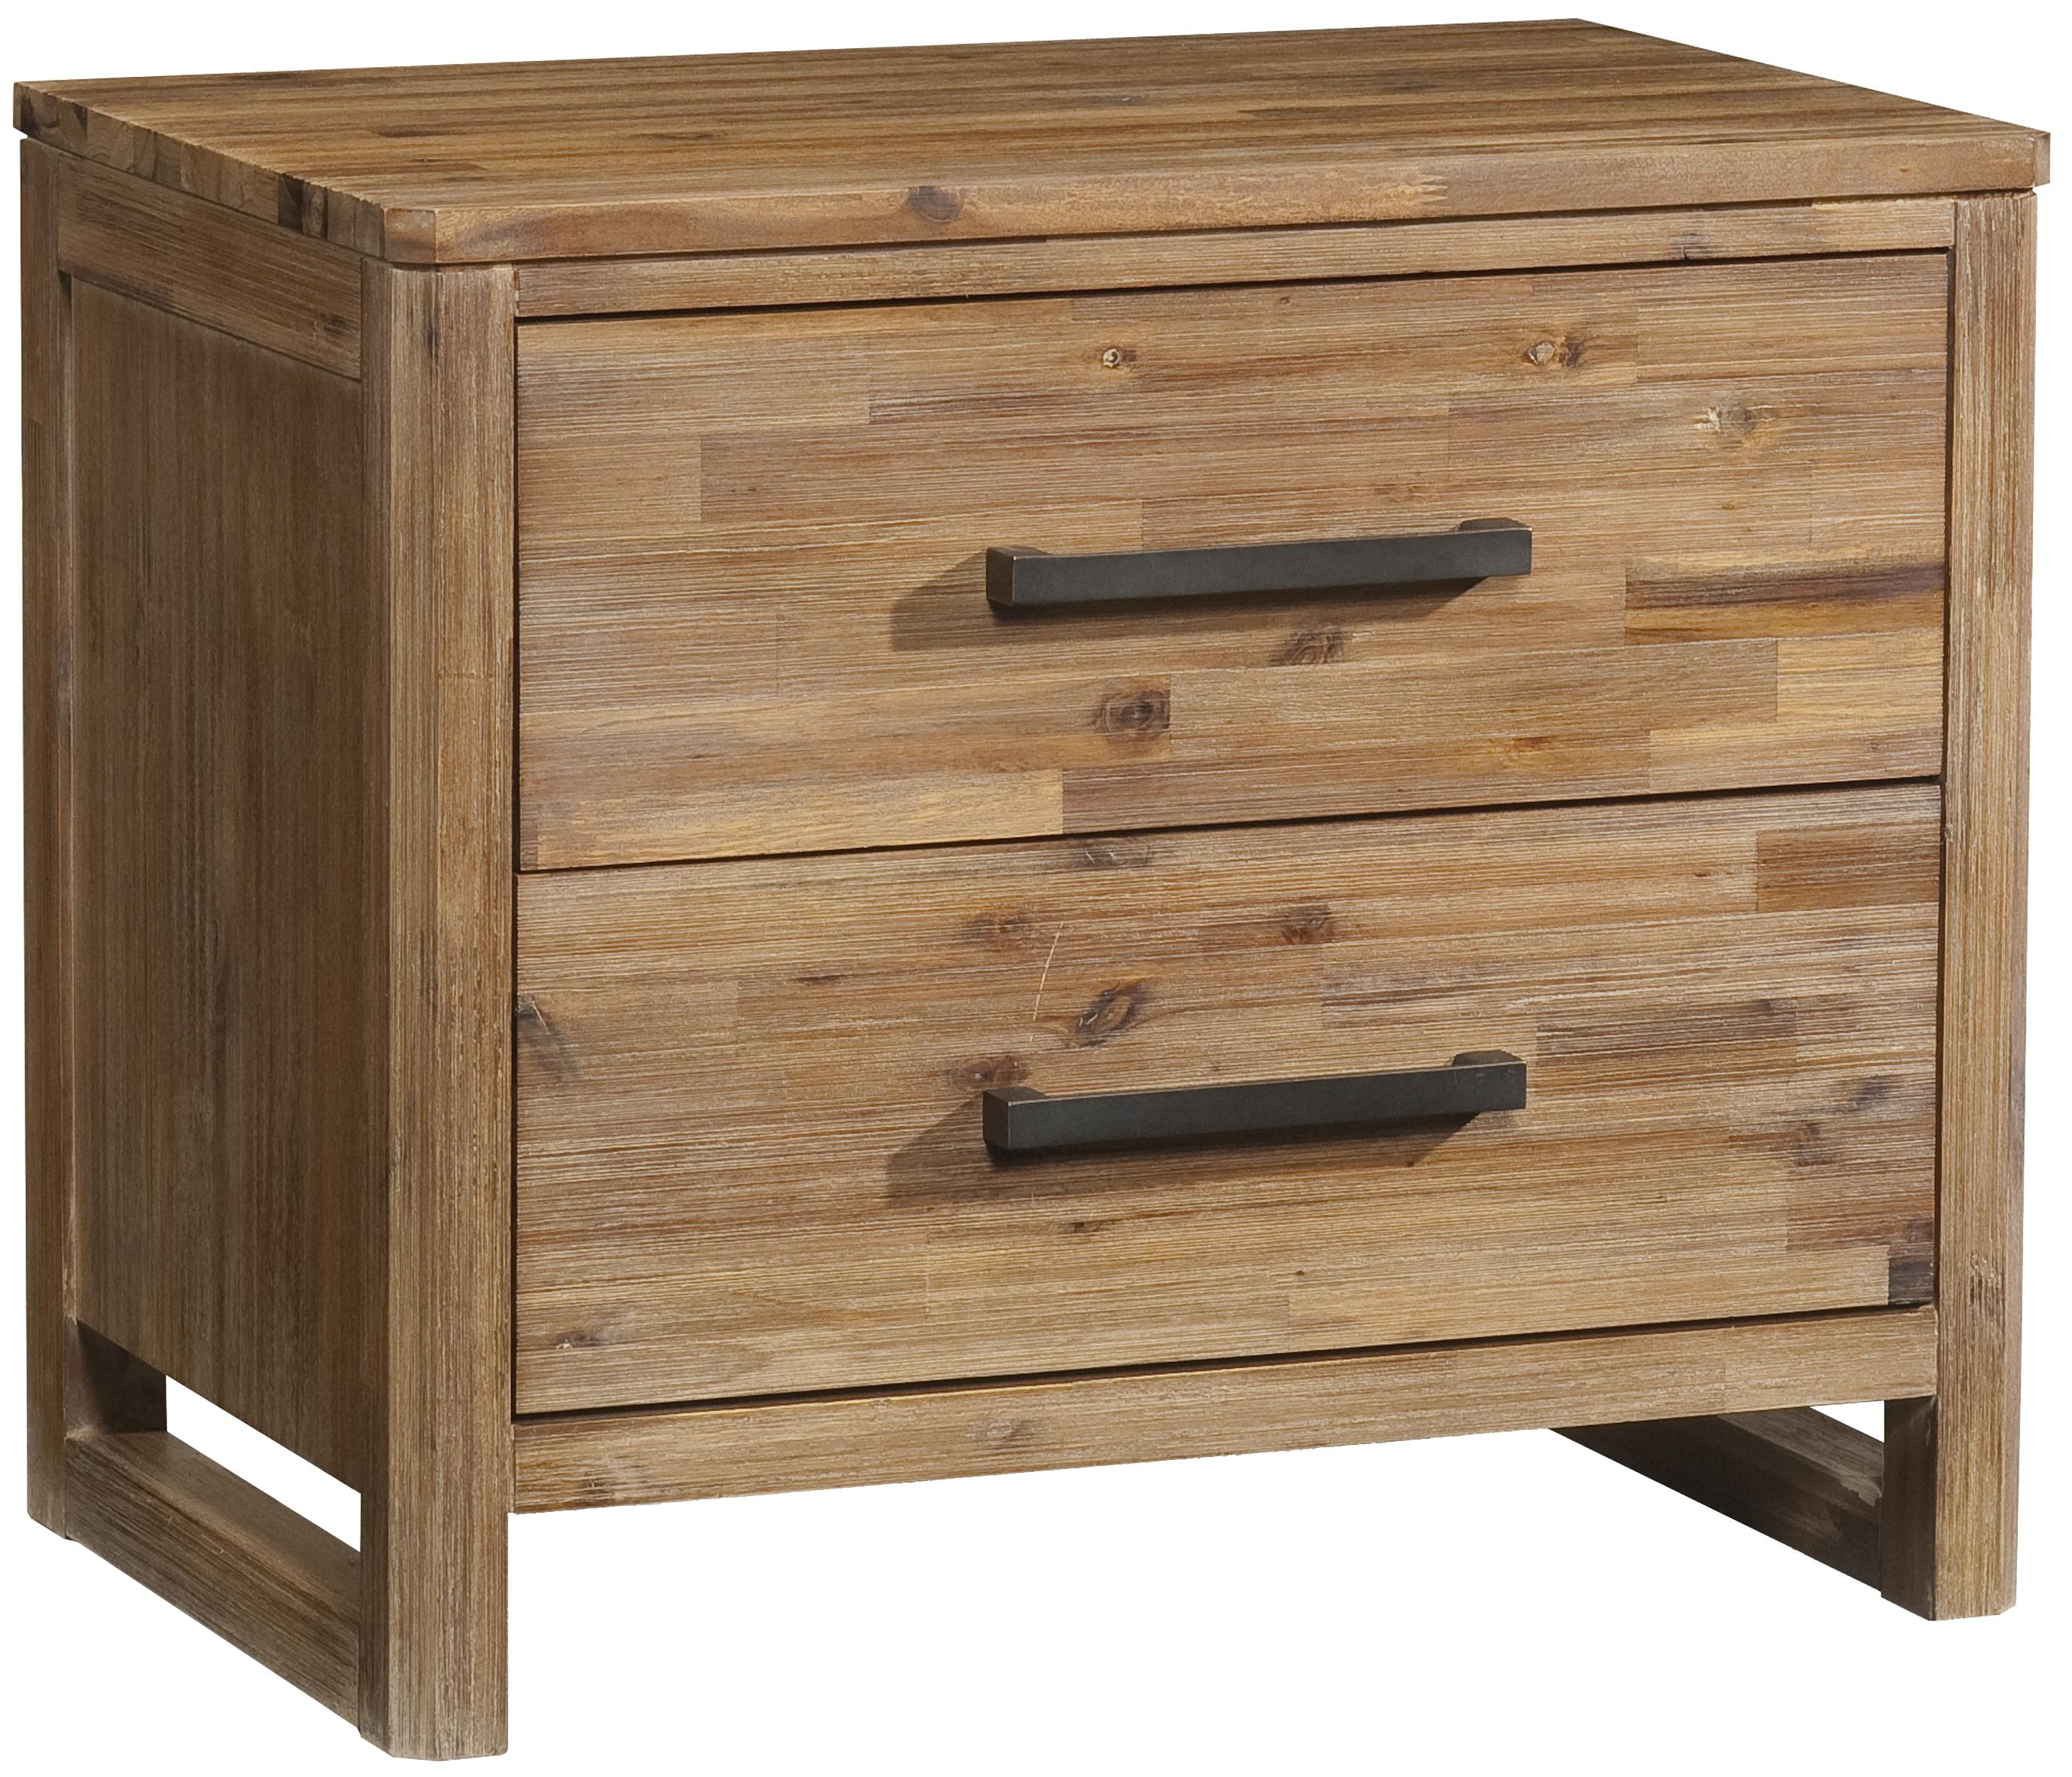 Two Drawer Modern Rustic Nightstand With Built In Power Strip